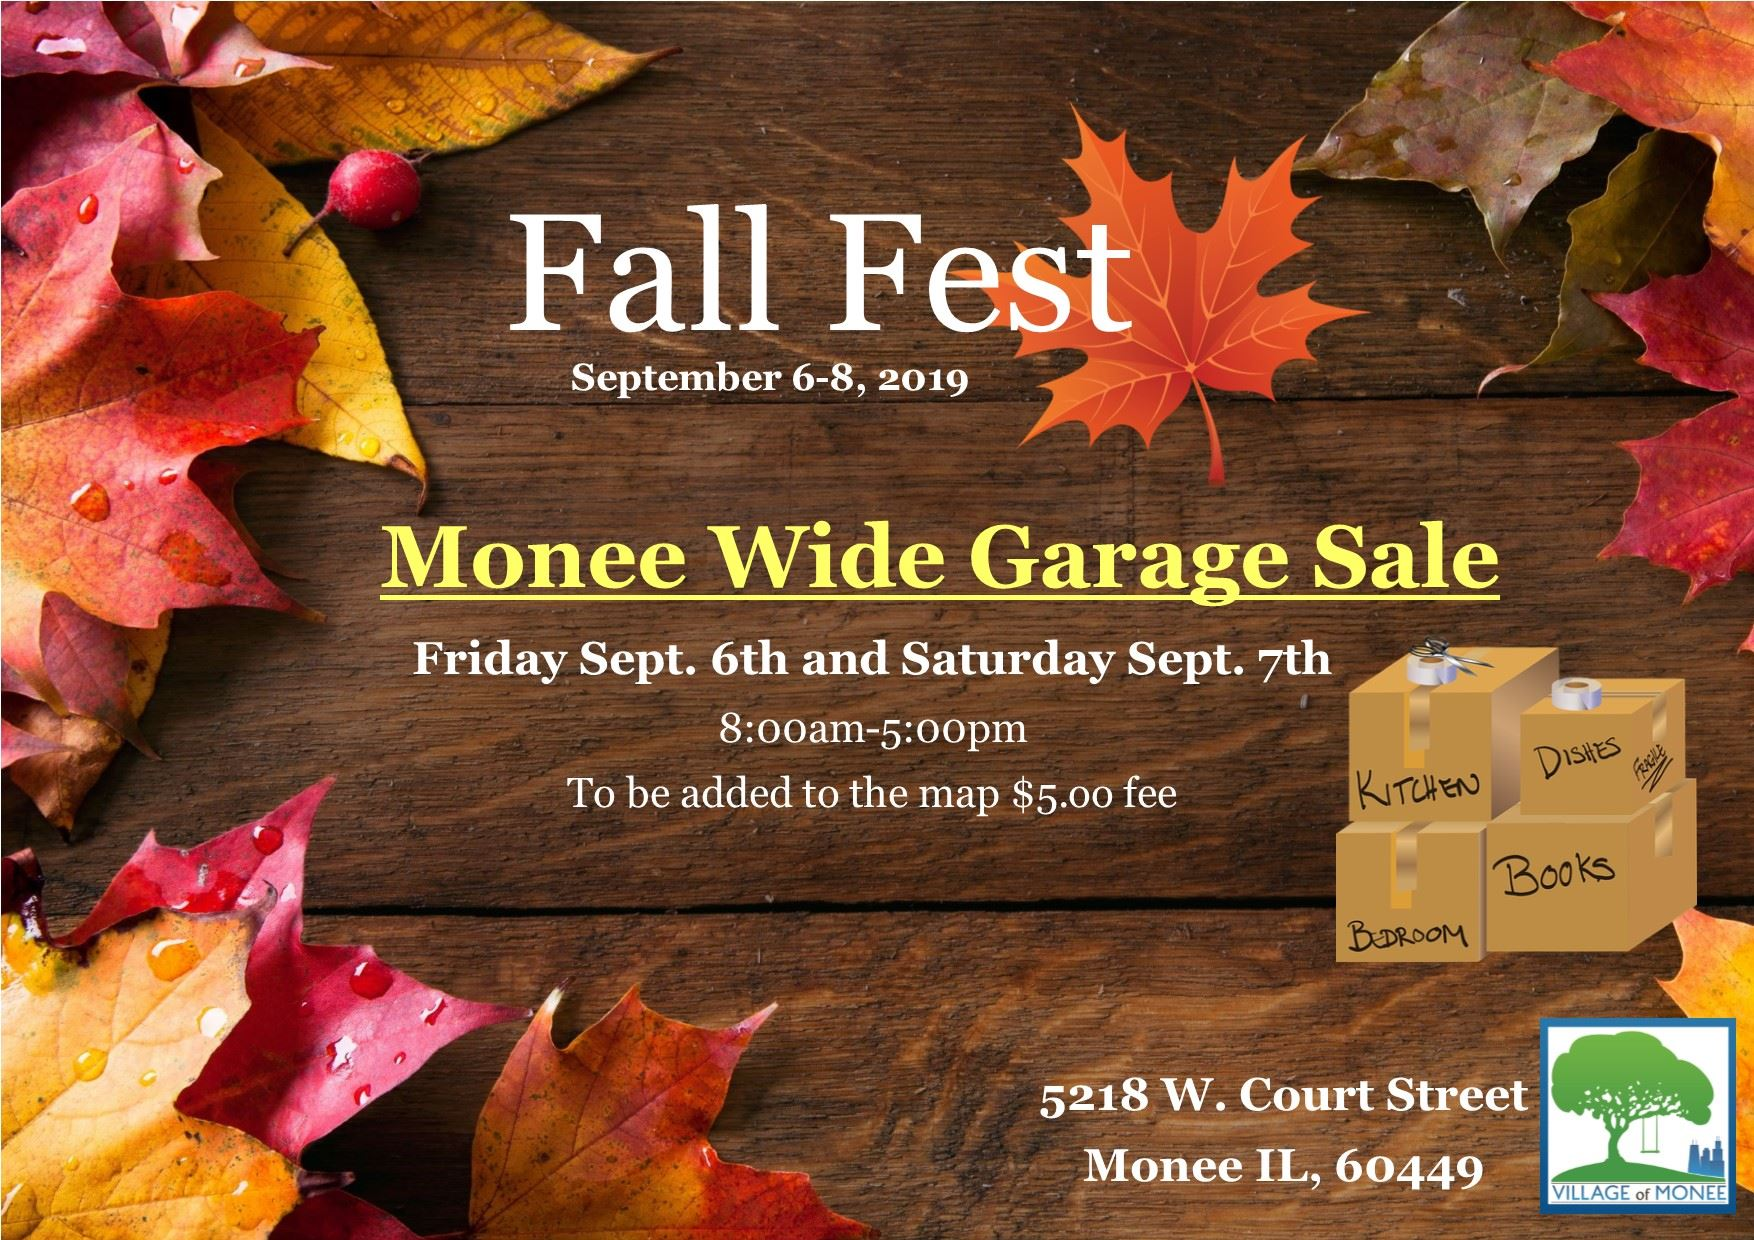 Fall Fest Garage Sale19